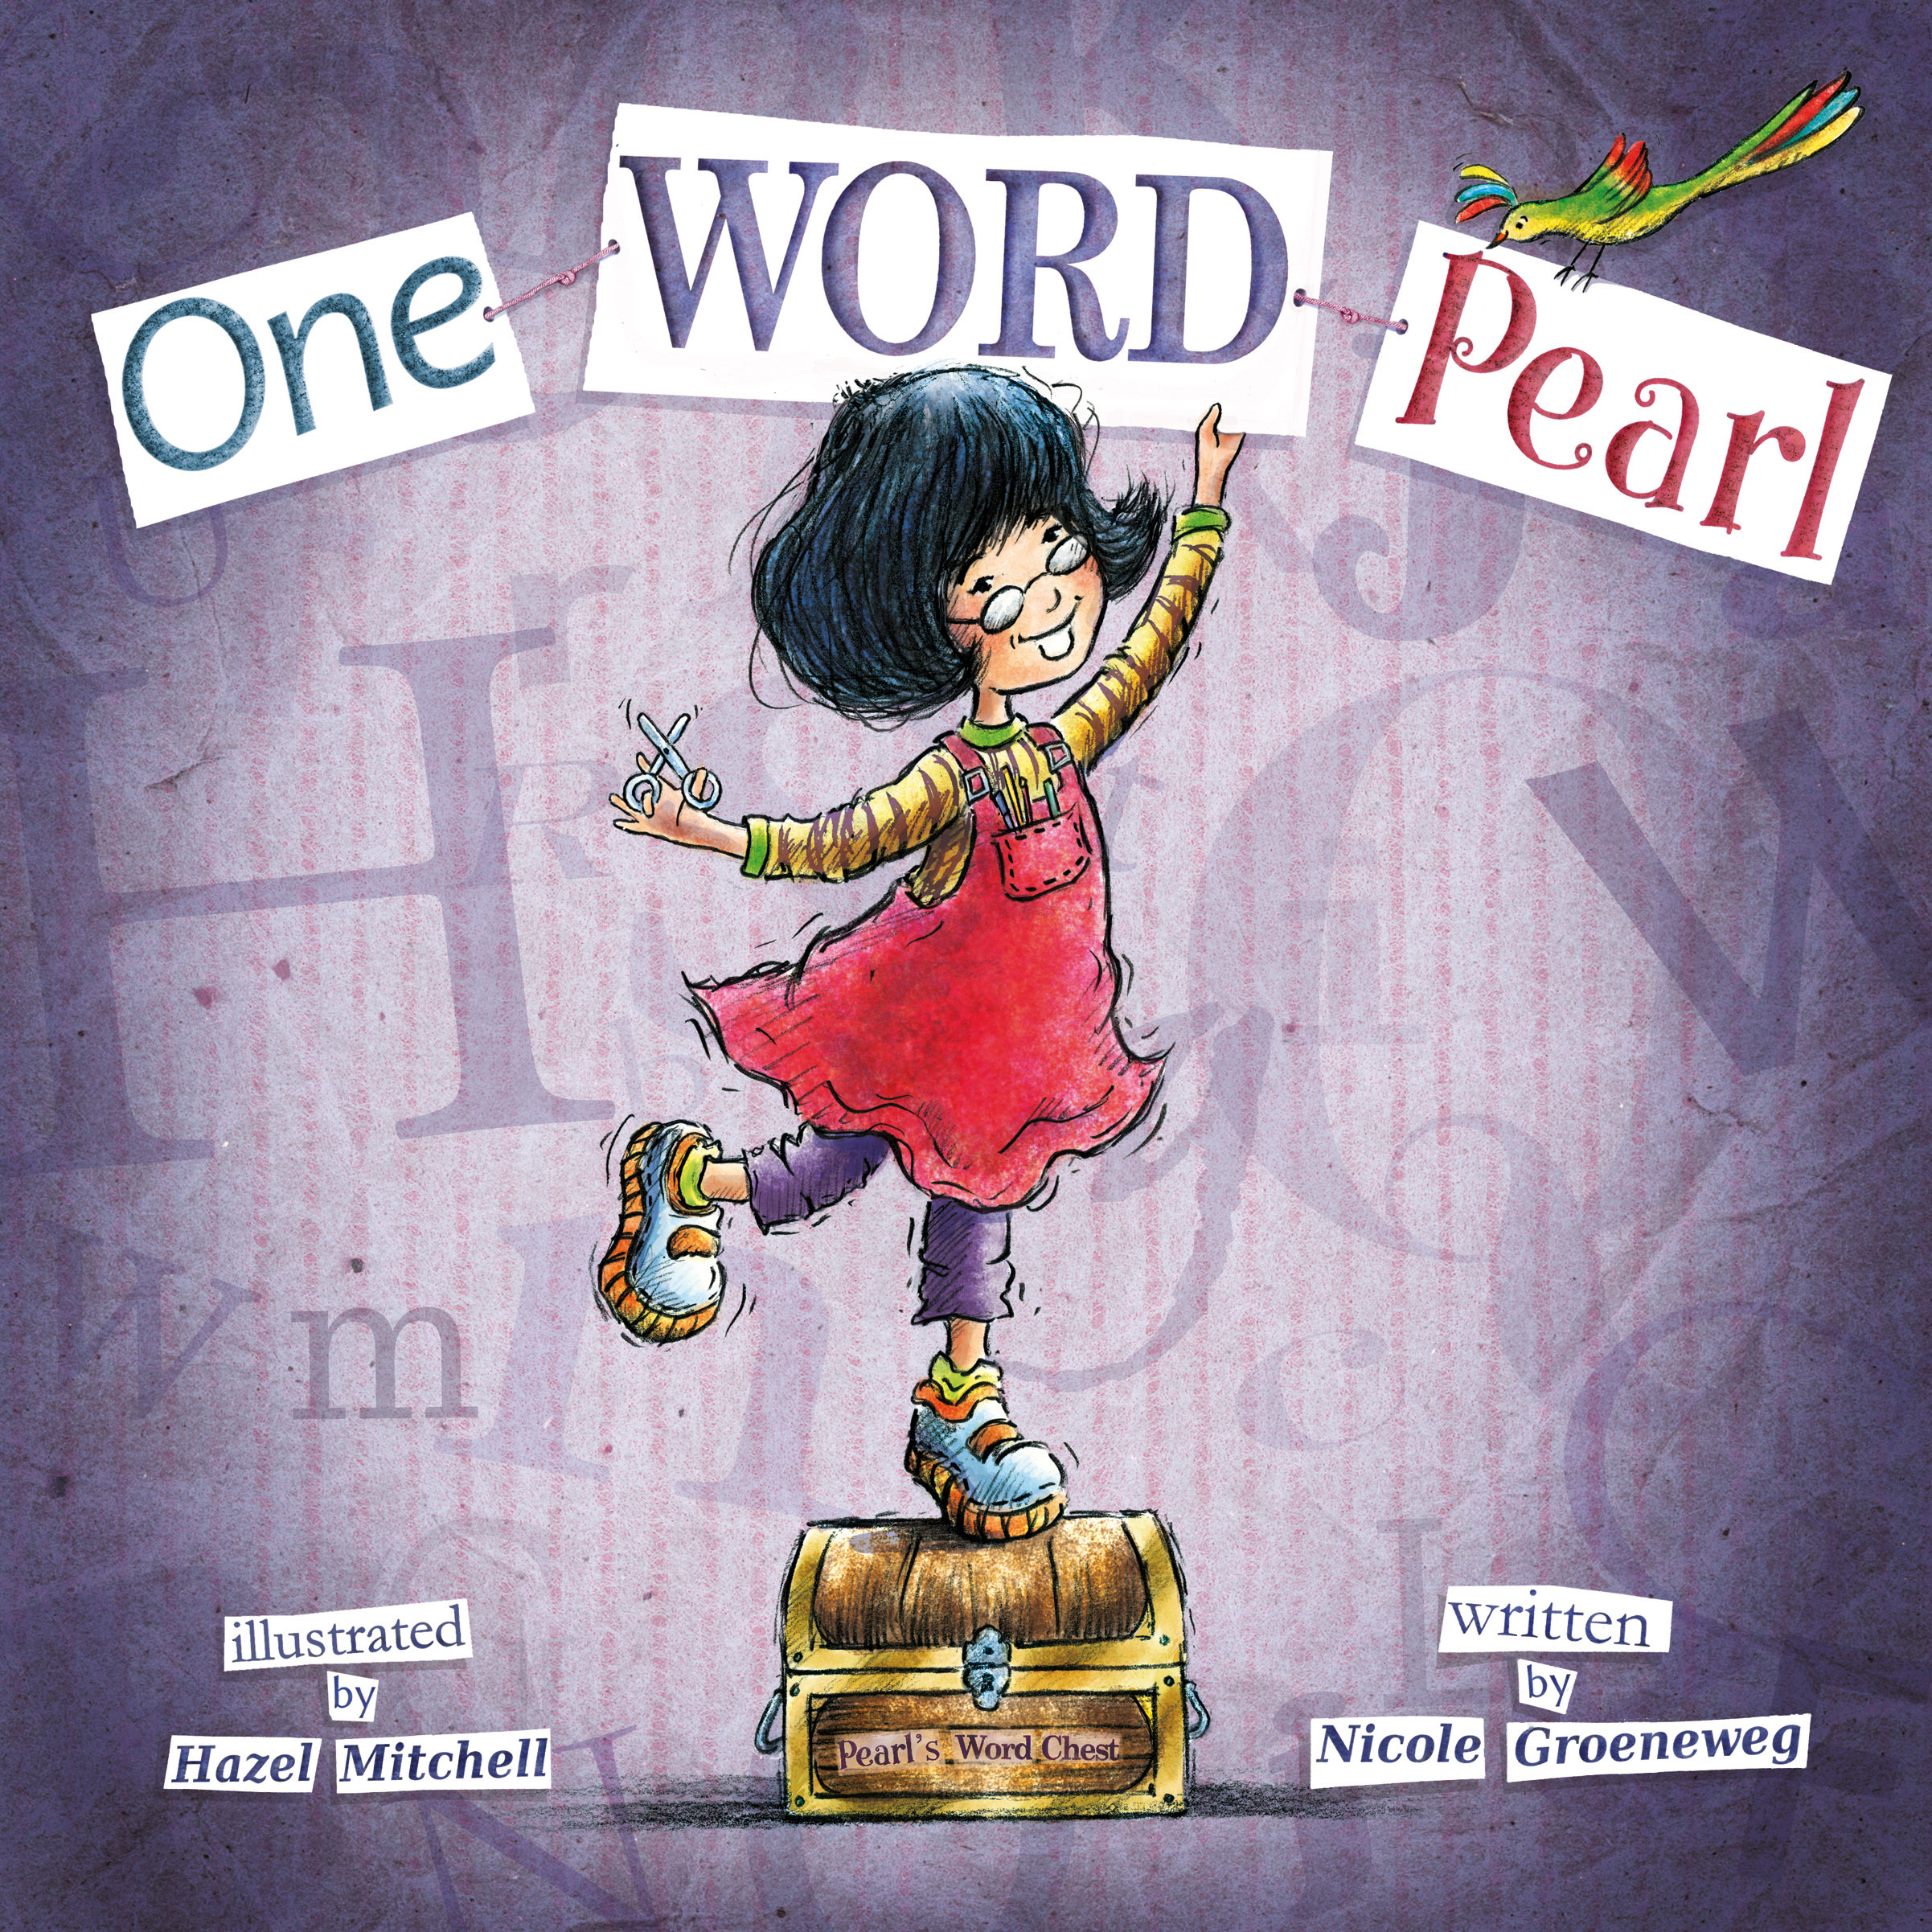 One Word Pearl Cover - Hazel Mitchell